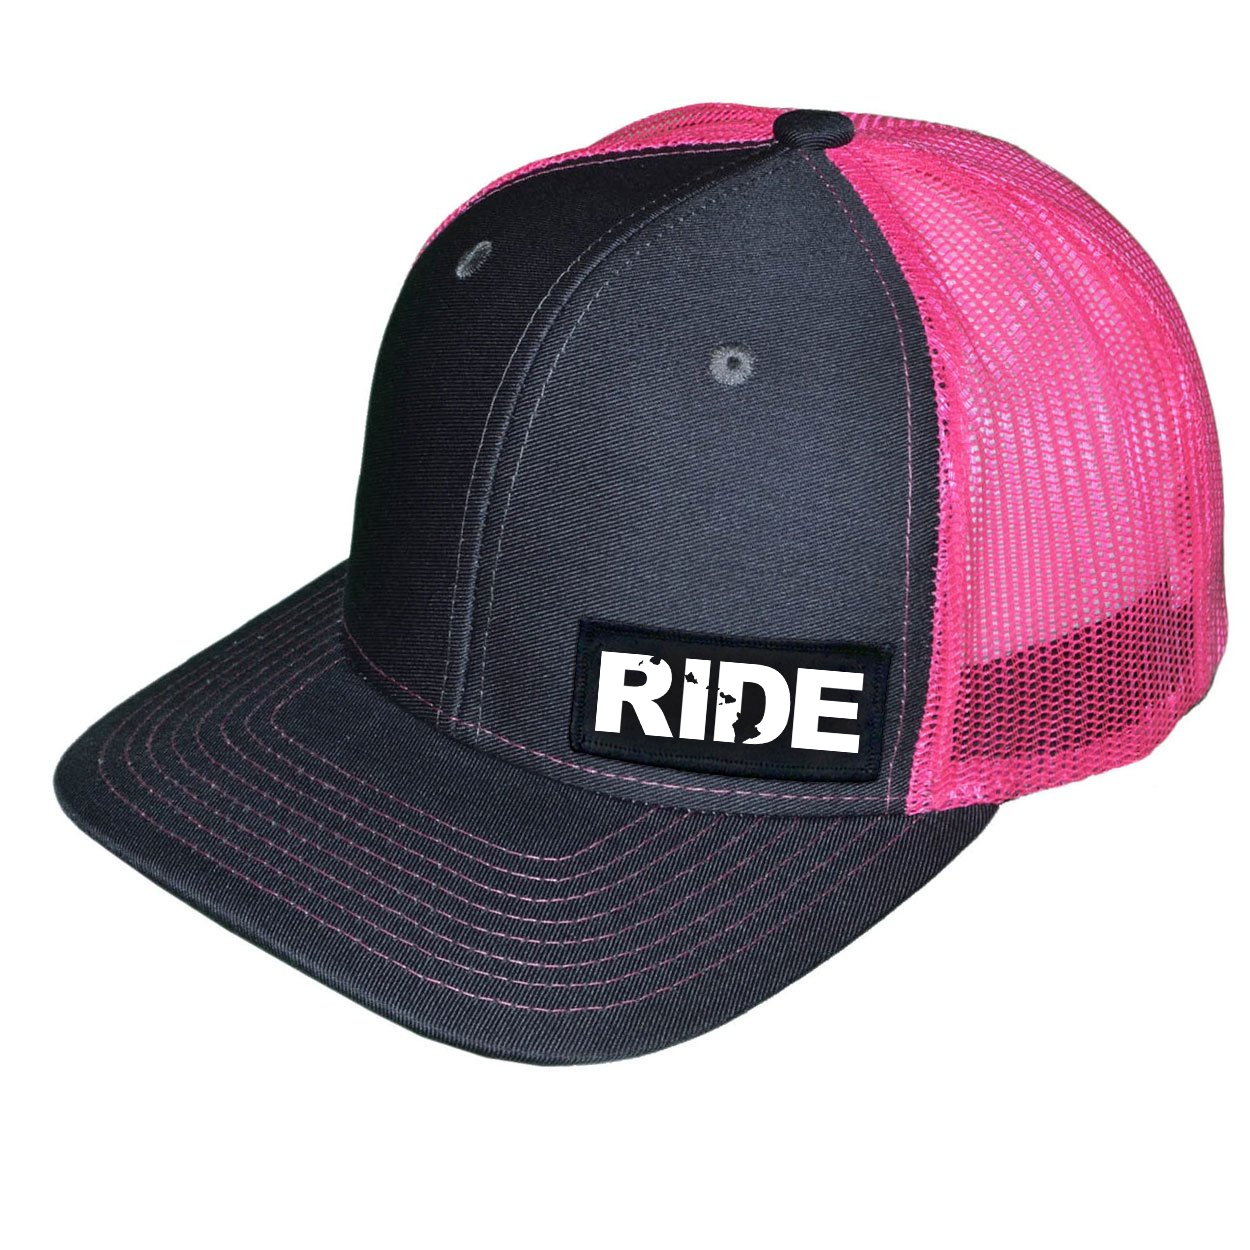 Ride Hawaii Night Out Woven Patch Snapback Trucker Hat Dark Gray/Neon Pink (White Logo)